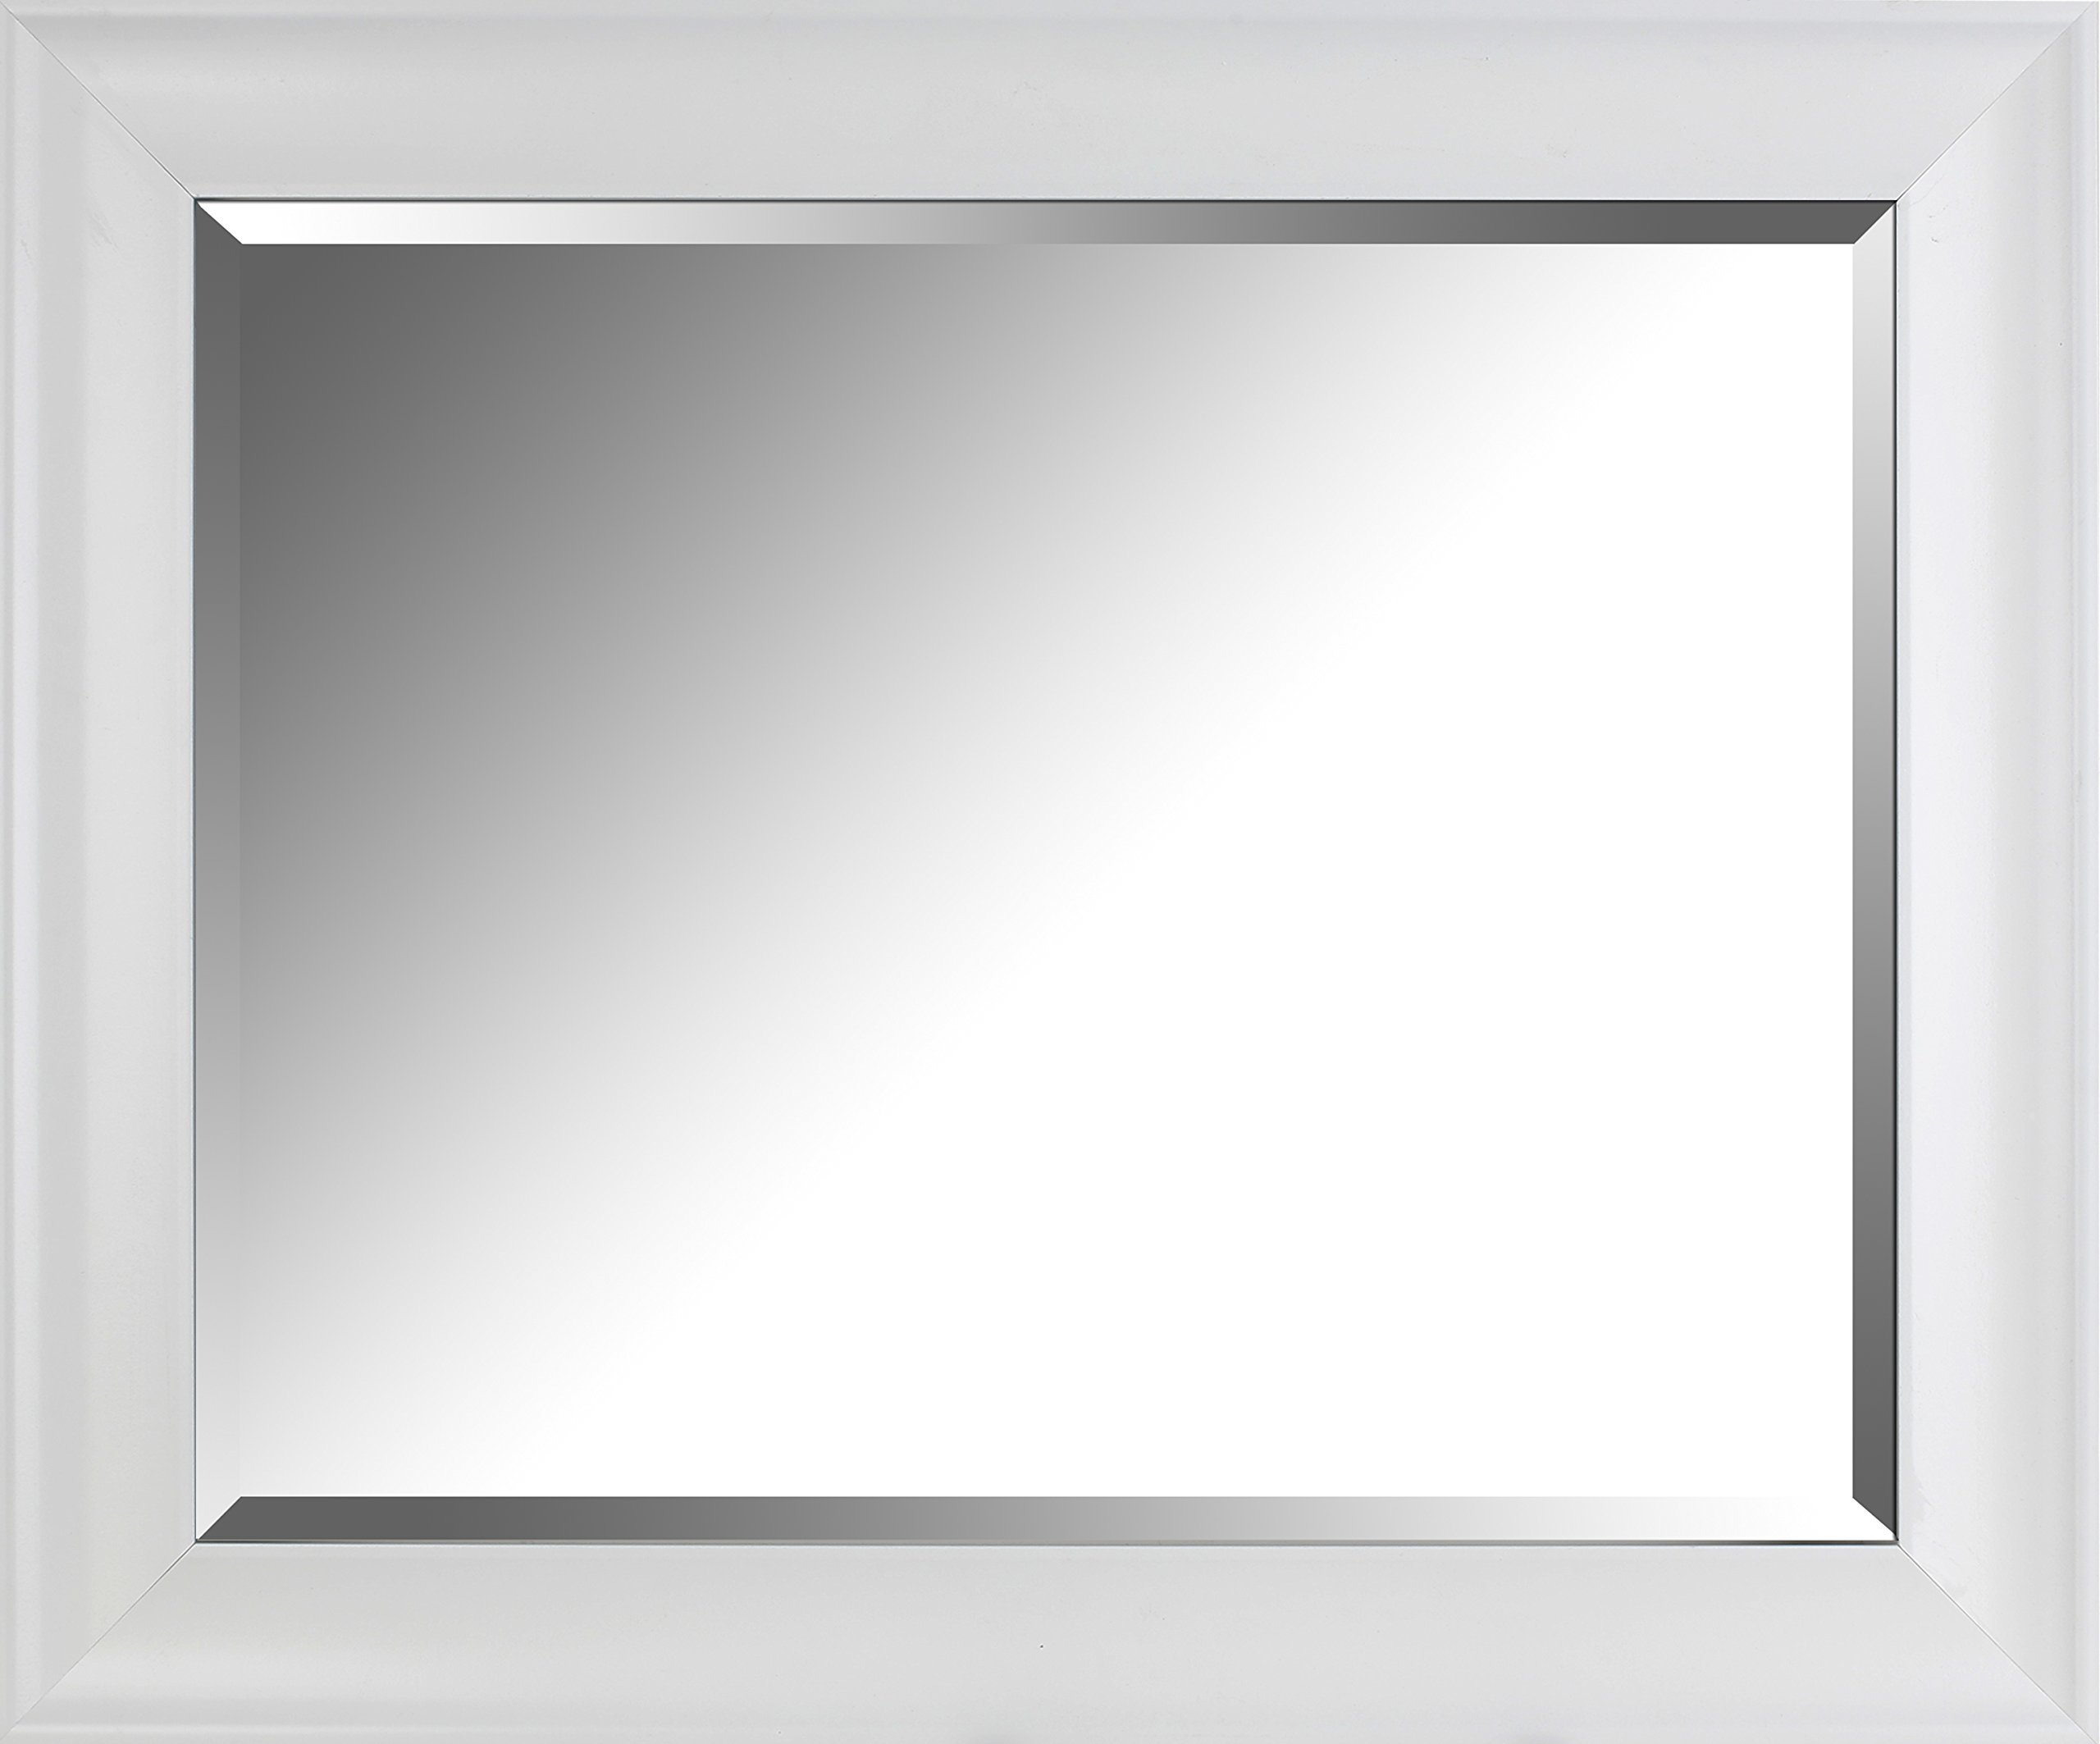 Mirrorize AMACTCM49 Cafe Bevel Wall, 28.5x34.5x3.25, Clear by Mirrorize